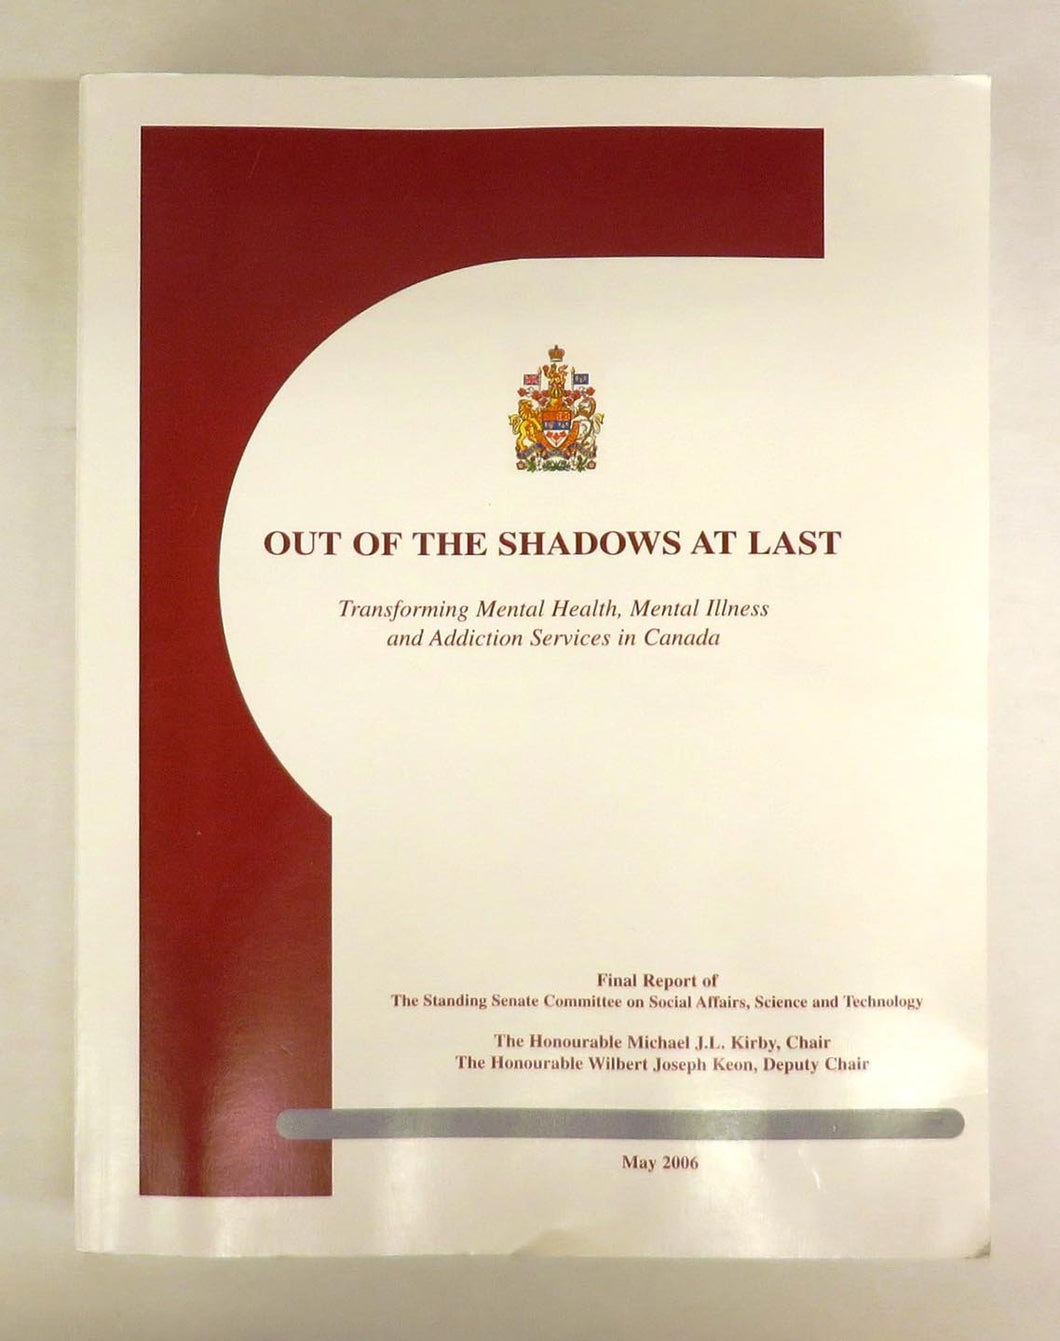 Out Of The Shadows At Last: Transforming Mental Health, Mental Illness and Addiction Services in Canada